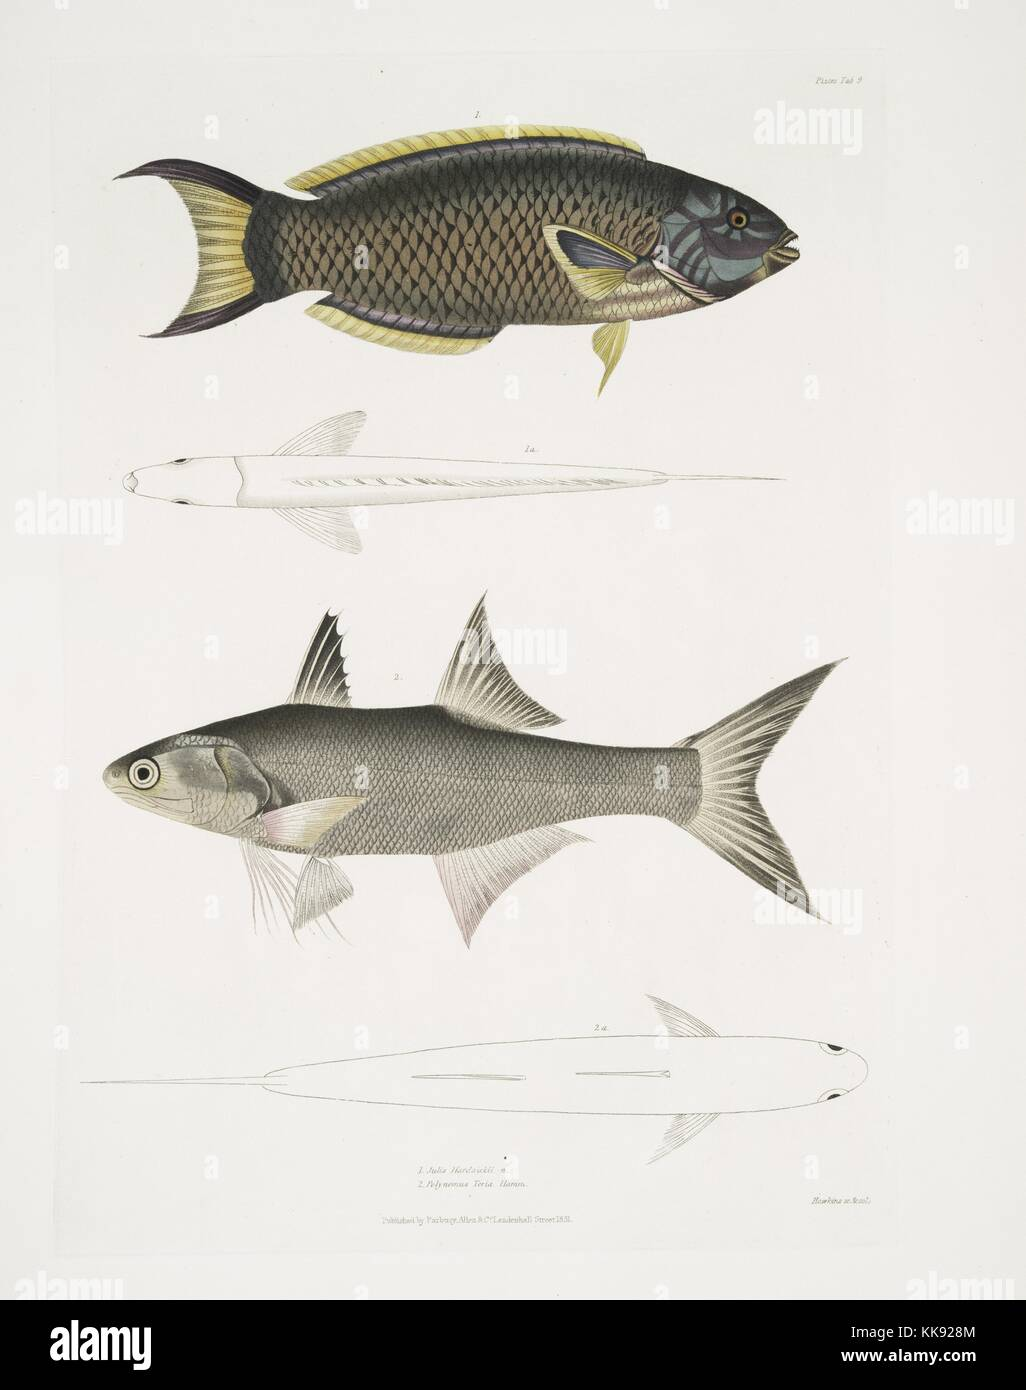 Four illustrations of fish, the first and third are colored images that provide a view of the fish in profile to - Stock Image